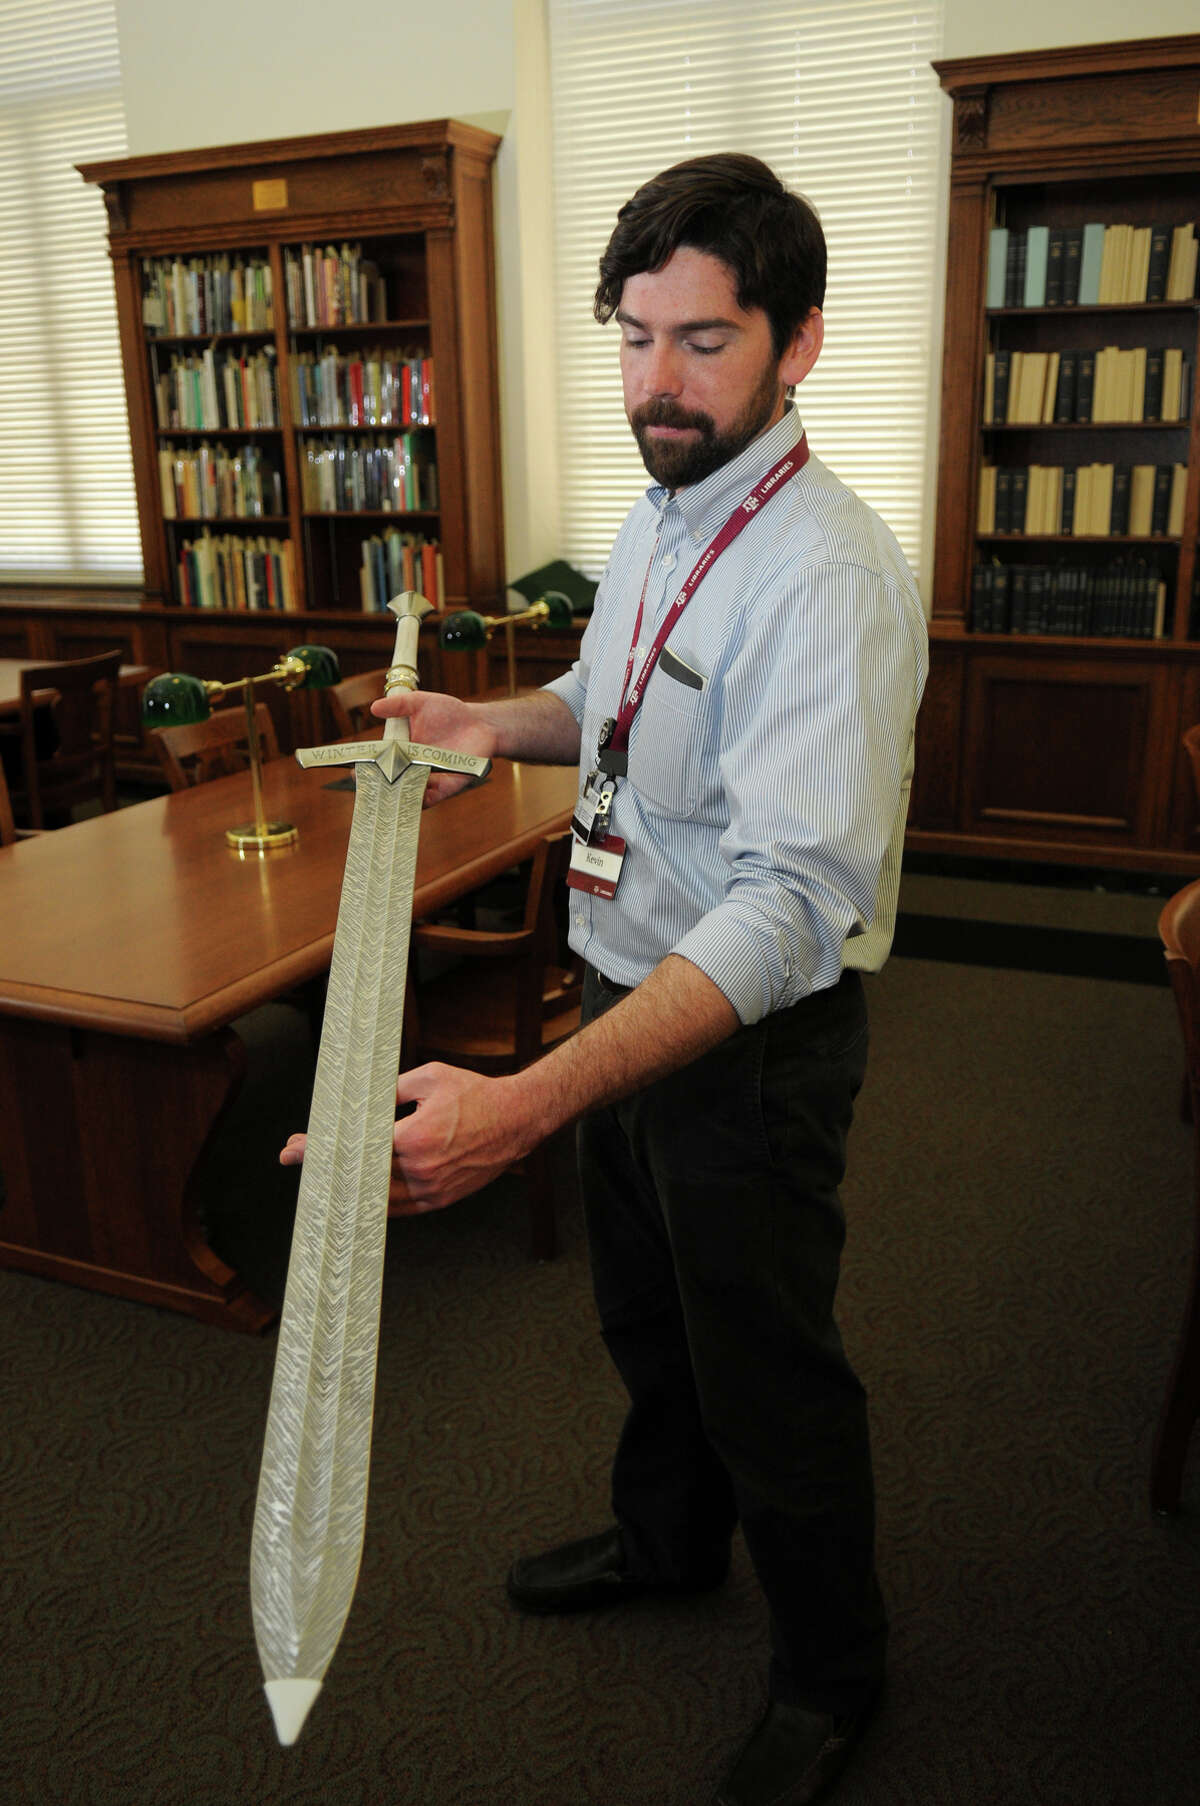 Kevin O'Sullivan, Instructional Assistant Professor and Outreach and Public Service Curator at the Cushing Memorial Library & Archives on the campus of Texas A&M University, shows off a replica of Ice, the ancestral greatsword of House Stark, carried by Ned until his arrest and used to execute him, produced by Valyrian Steel.